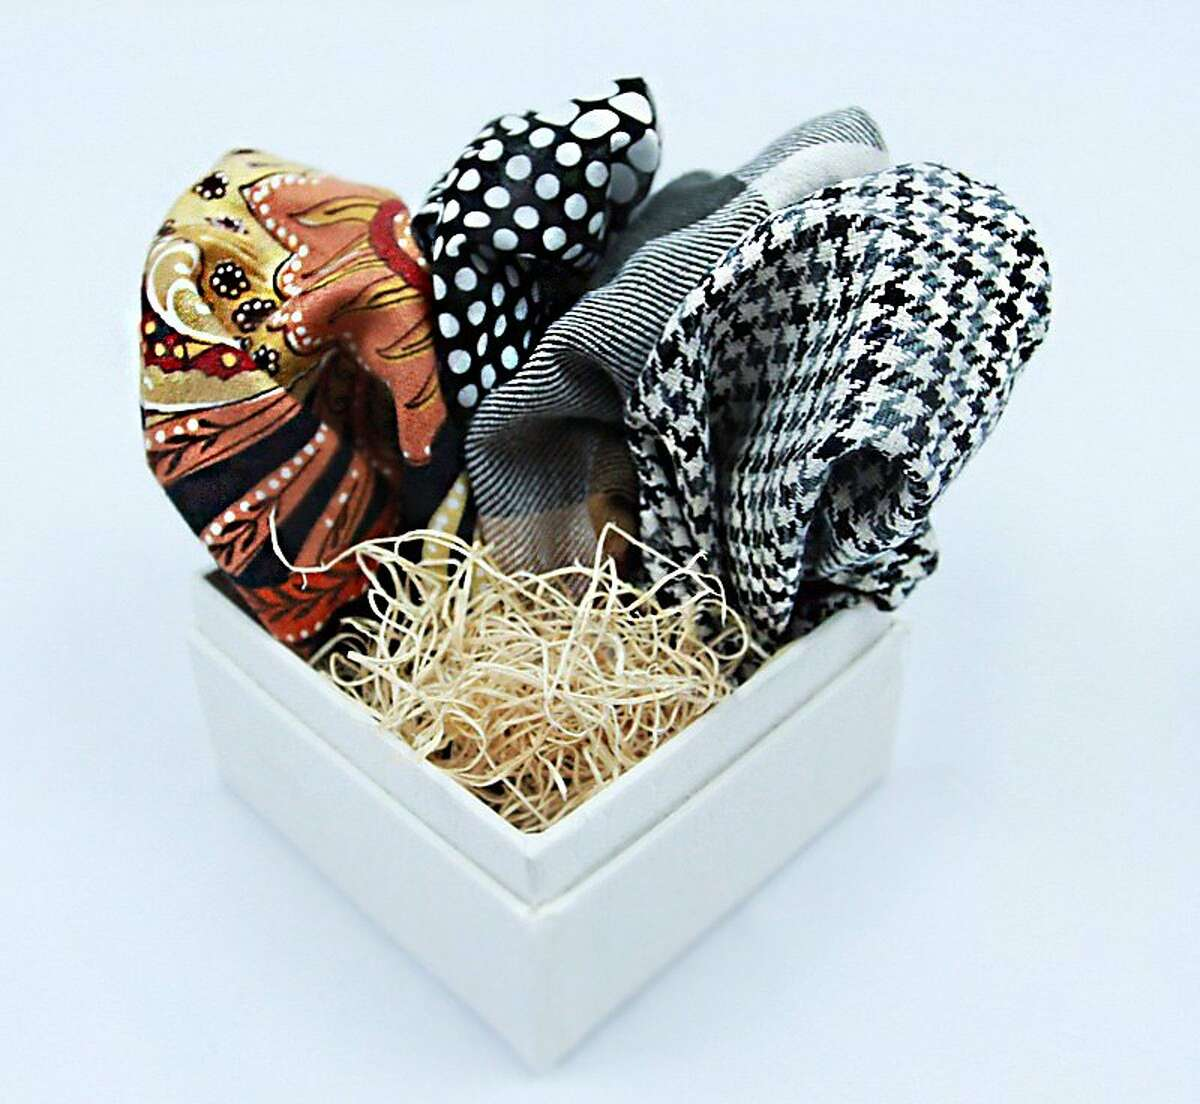 Bay Area menswear vet Gautam Sodera, of streetstyle blog the Avant Gardist, created this subscription box with a handsome line of handkerchiefs in plaid, floral and checks that he's designed, for $25 per month.